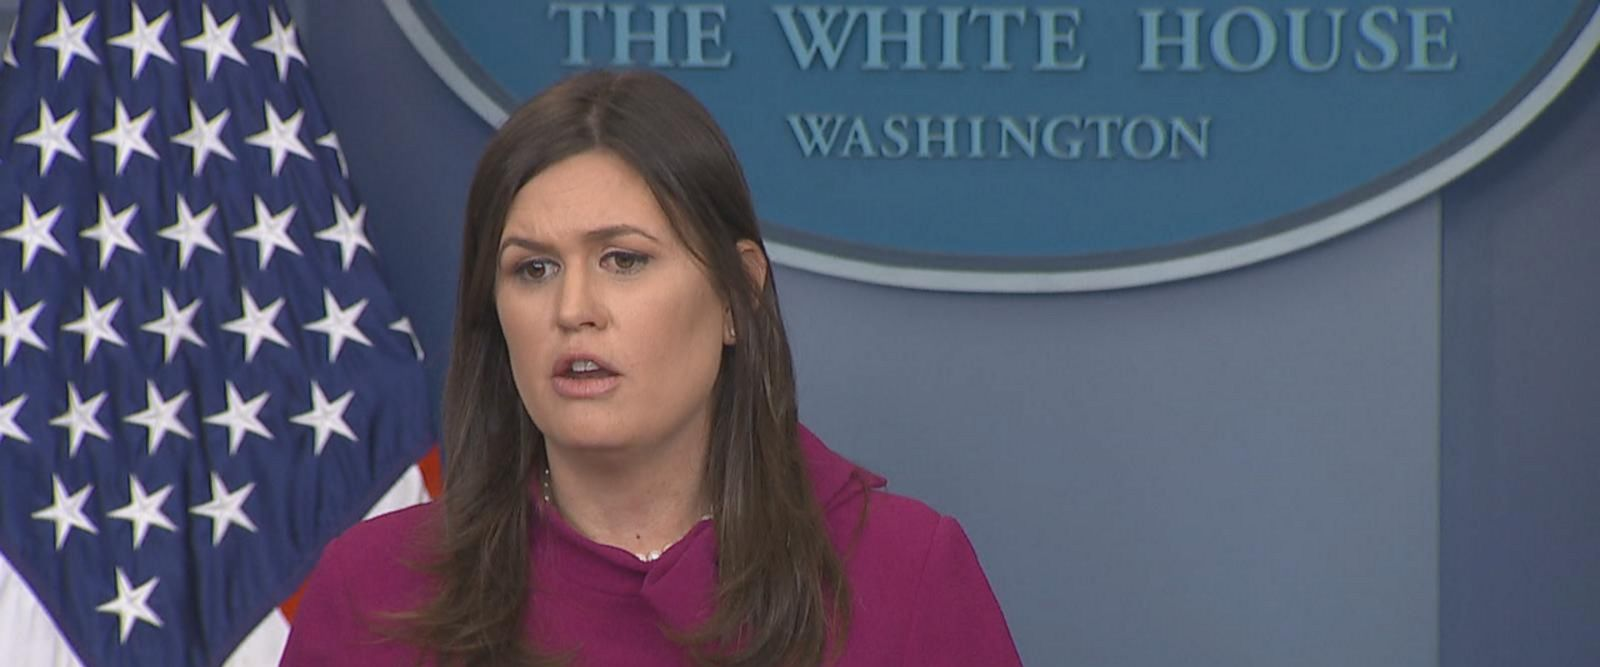 President Trump will host individuals impacted by some of the country's worst school shootings for a listening session at the White House on Wednesday, according to press secretary Sarah Sanders.